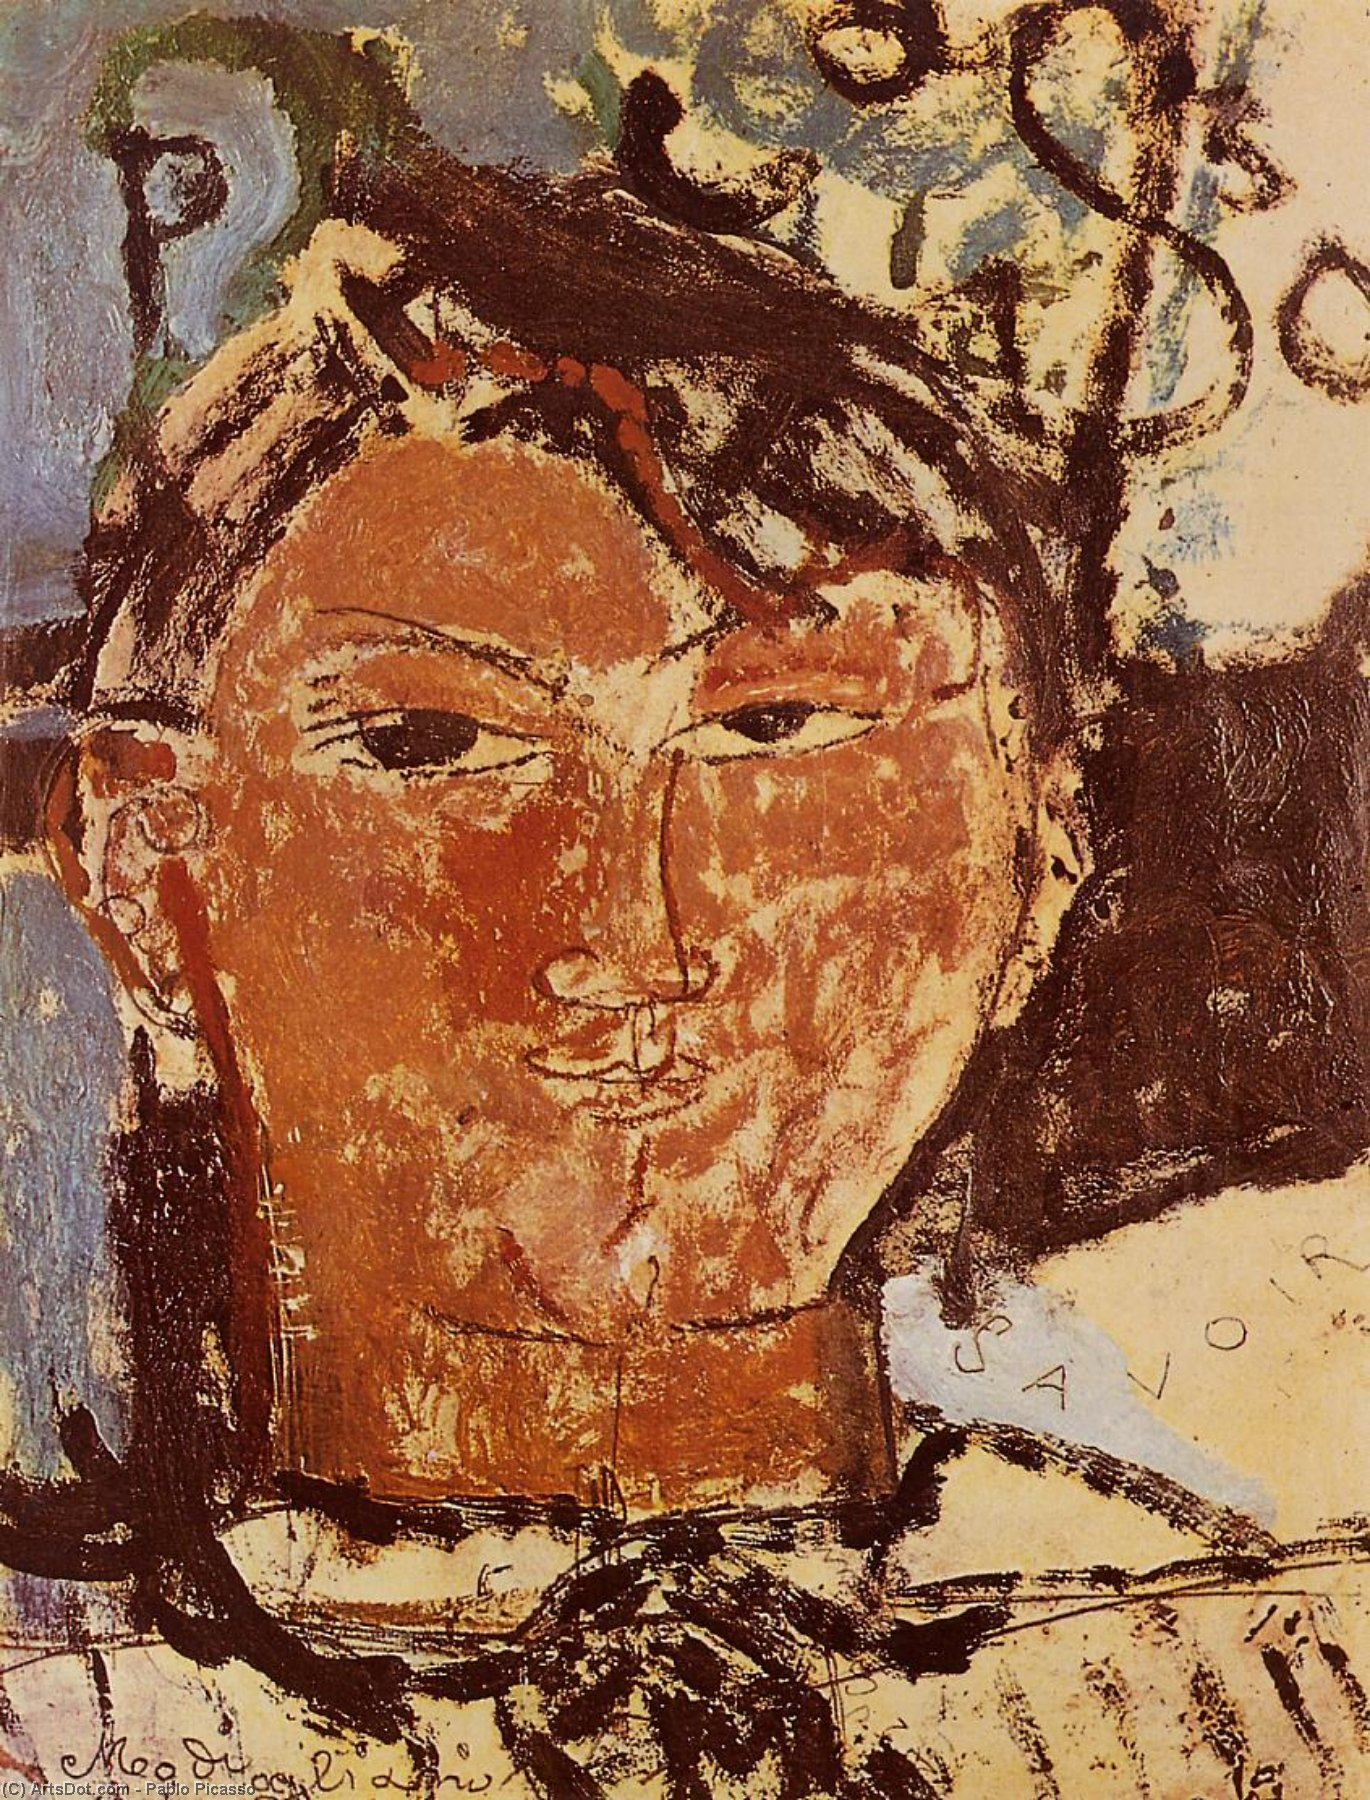 Wikioo.org - The Encyclopedia of Fine Arts - Painting, Artwork by Pablo Picasso - Portrait of Daniel-Henry Kahnweiler